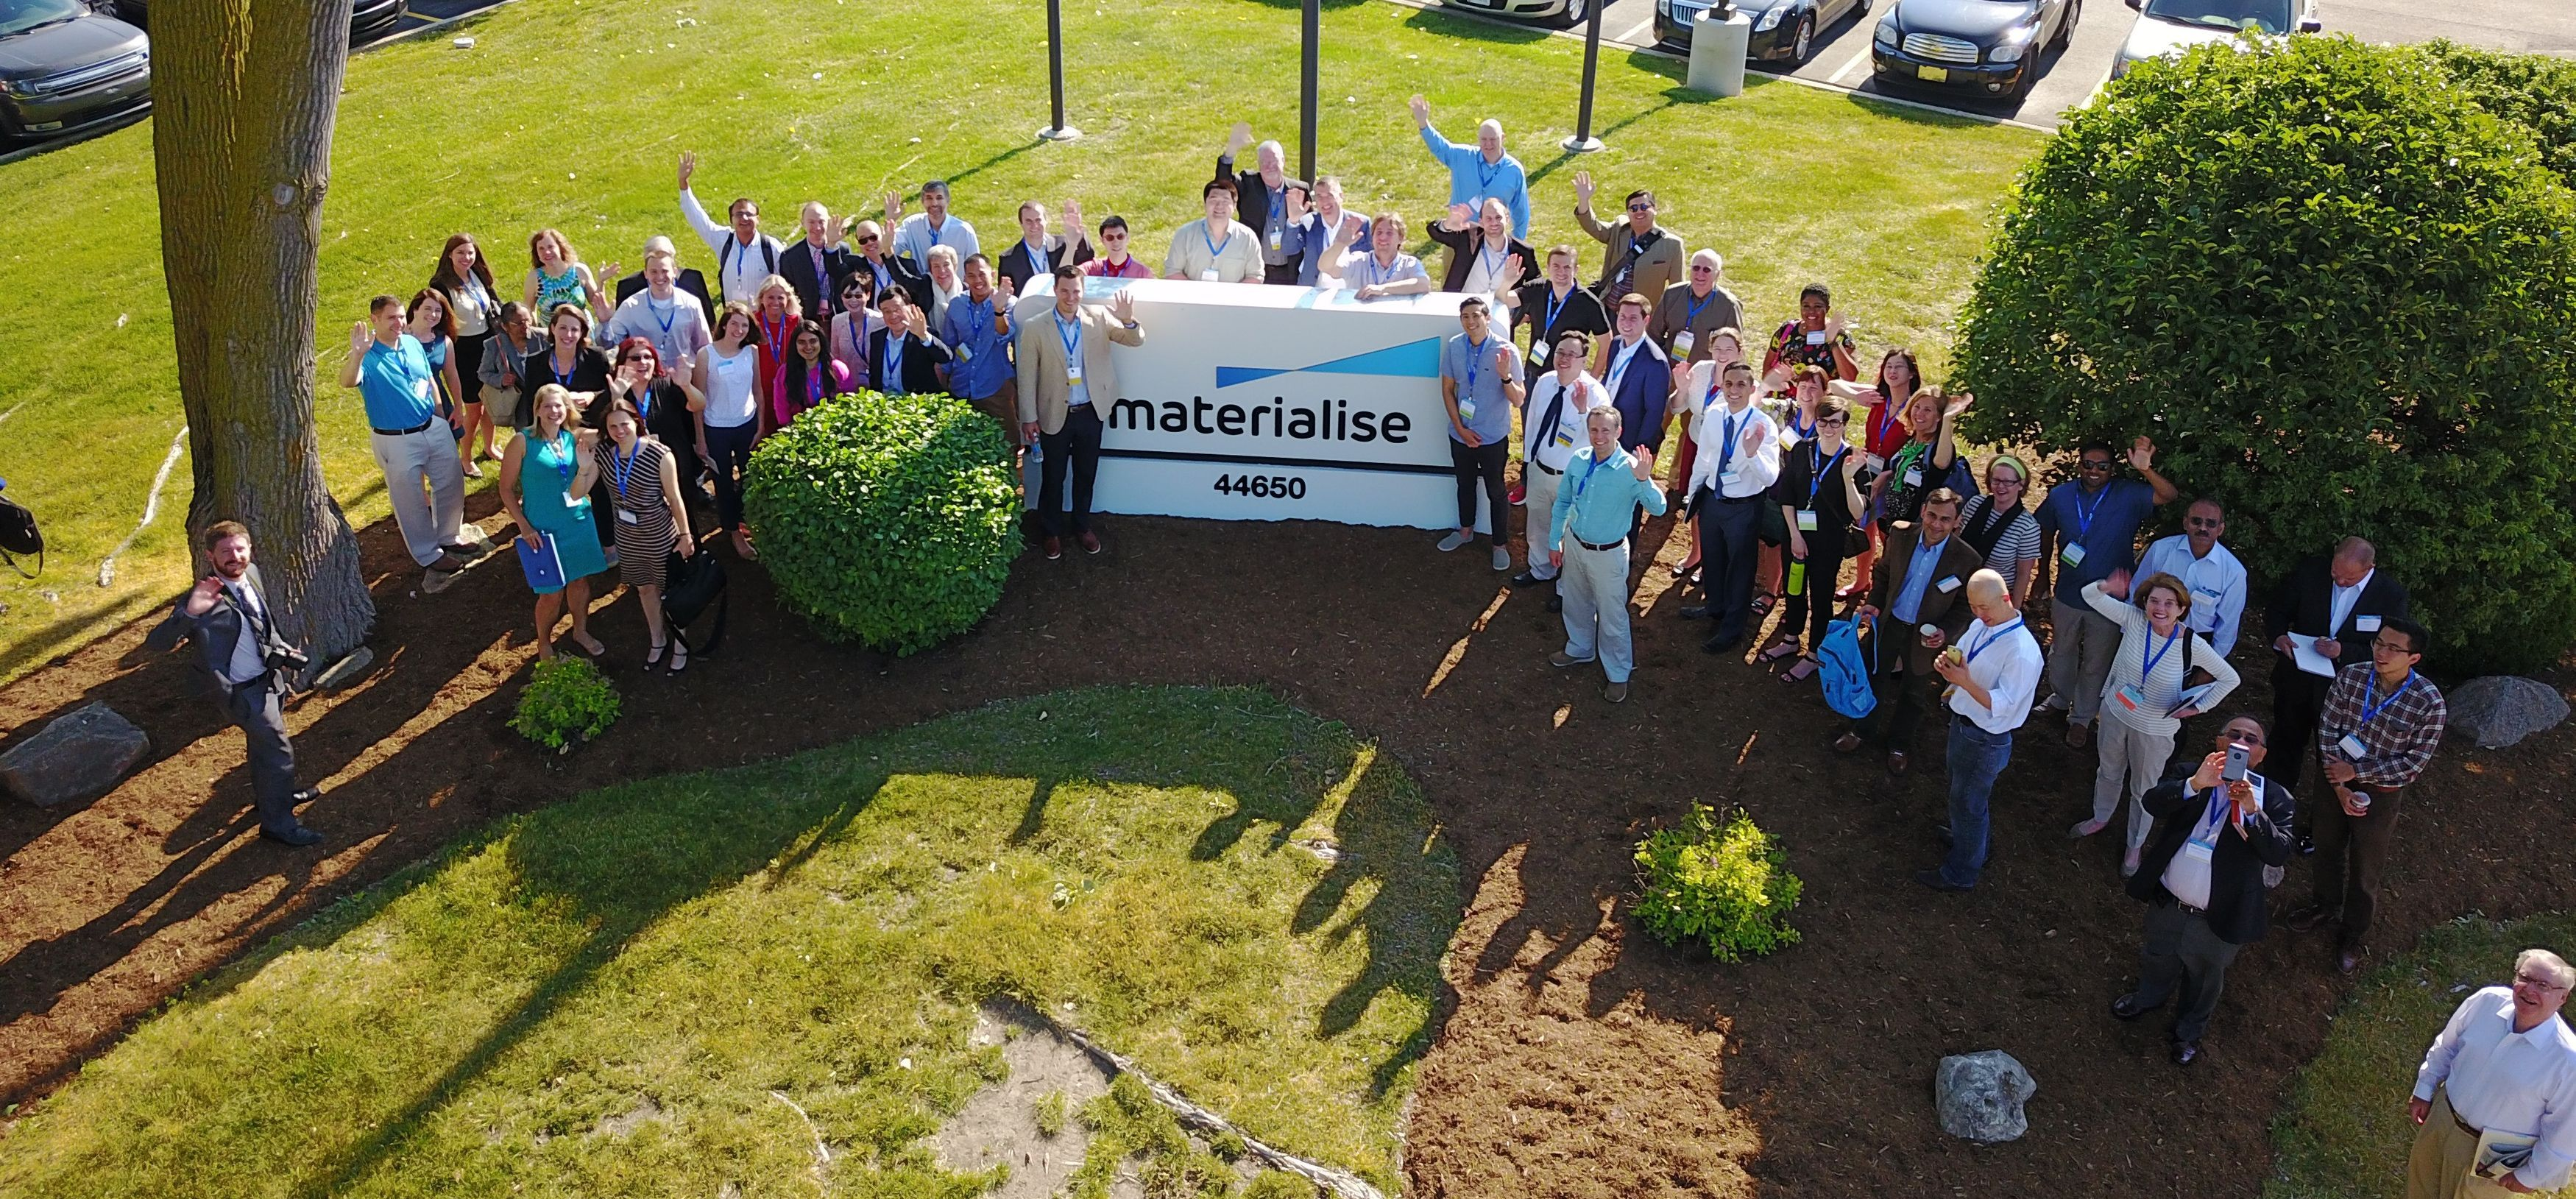 Materialise USA Hosts 3D Printing in Medicine Course